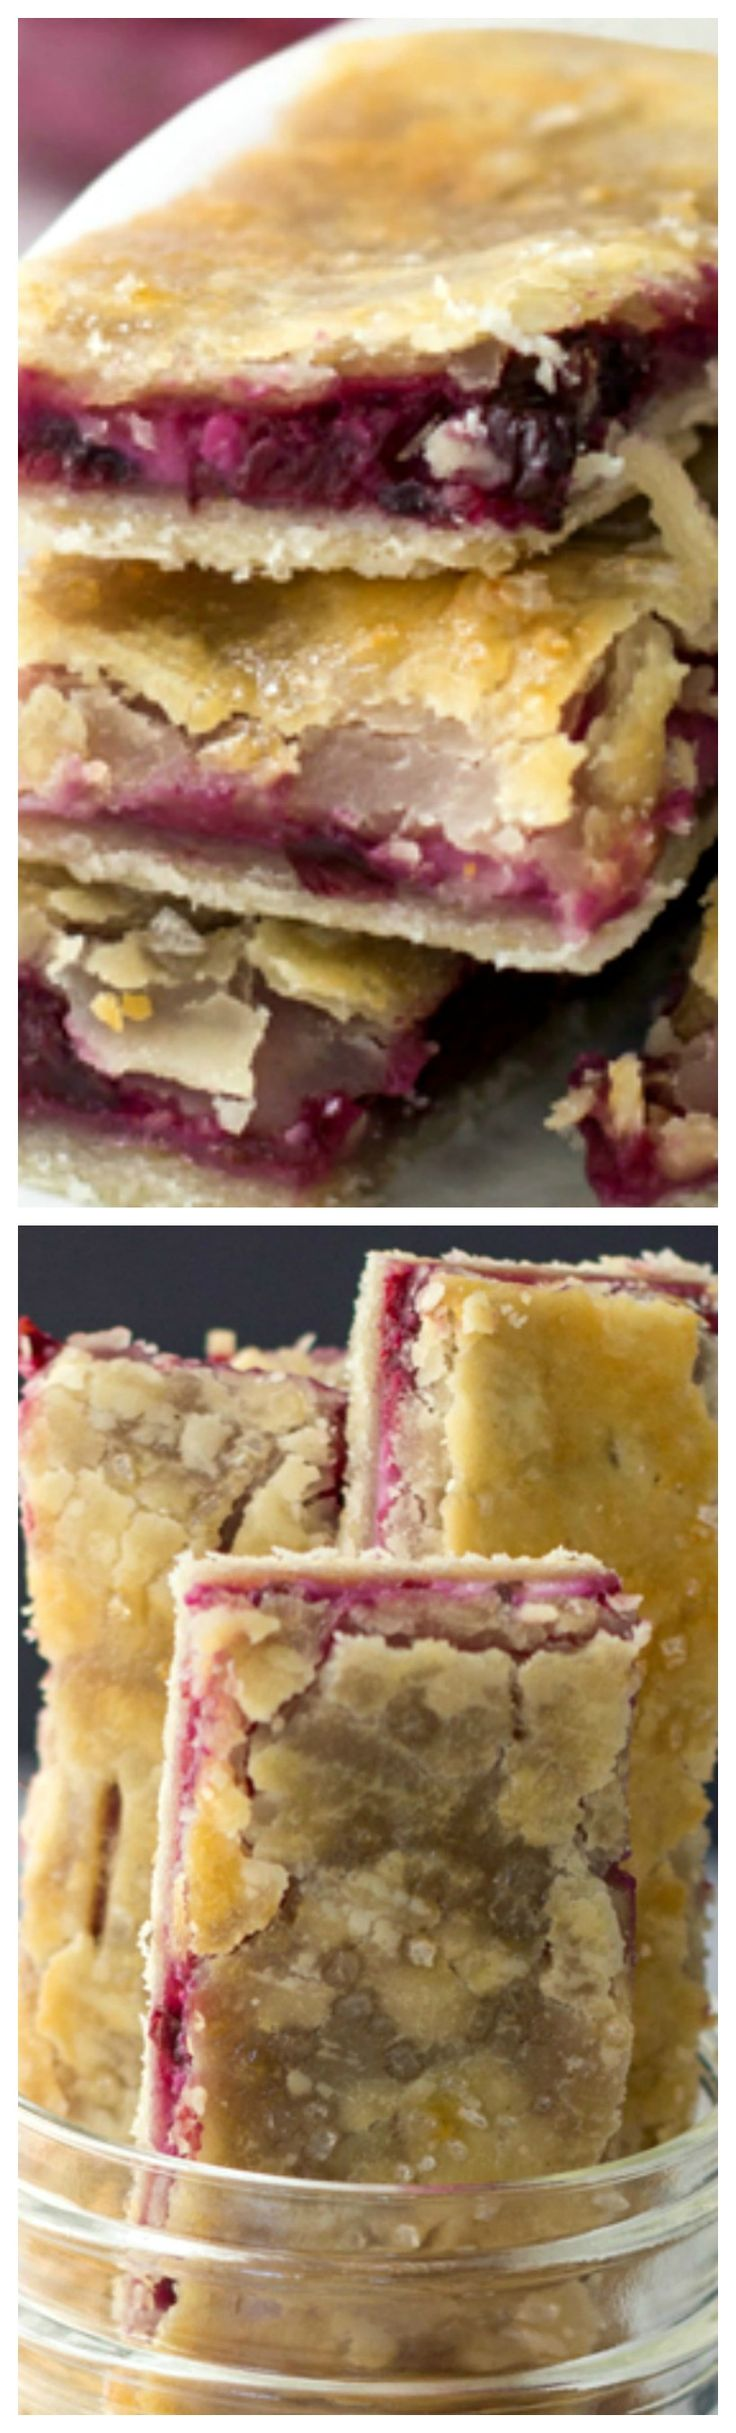 Blackberry Cream Cheese Pie Dippers ~ A flaky pie crust filled with creamy blackberry cream cheese spread and baked until golden and crispy